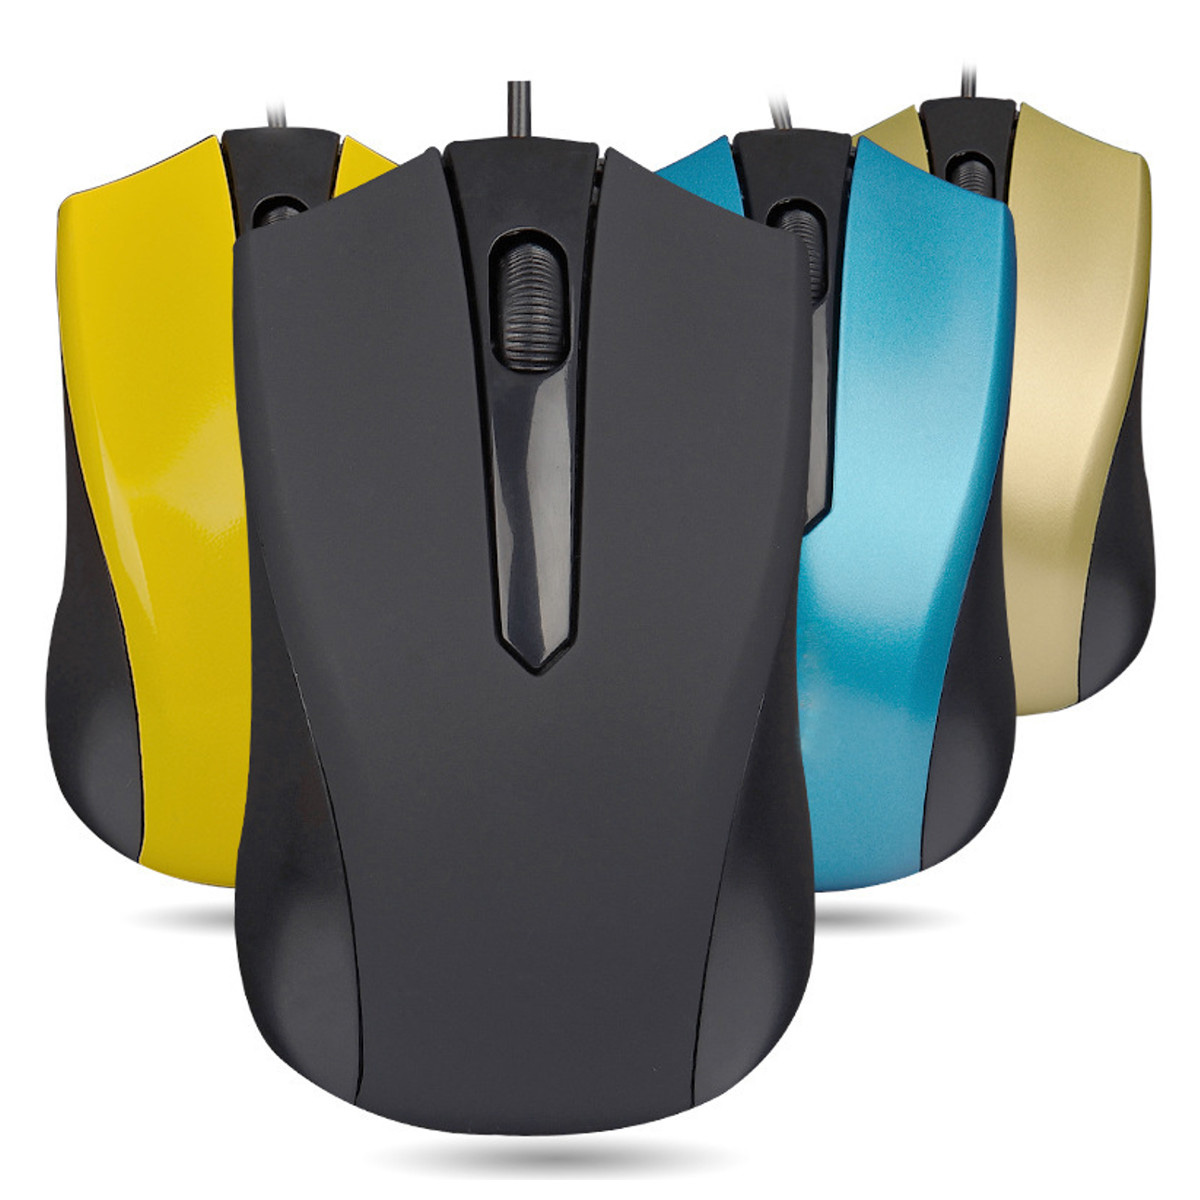 Online color wheel games - New 1pc Usb Wired Office Mouse Mice Scroll Wheel 3 Button 1000dpi For Computer Desktop Pc